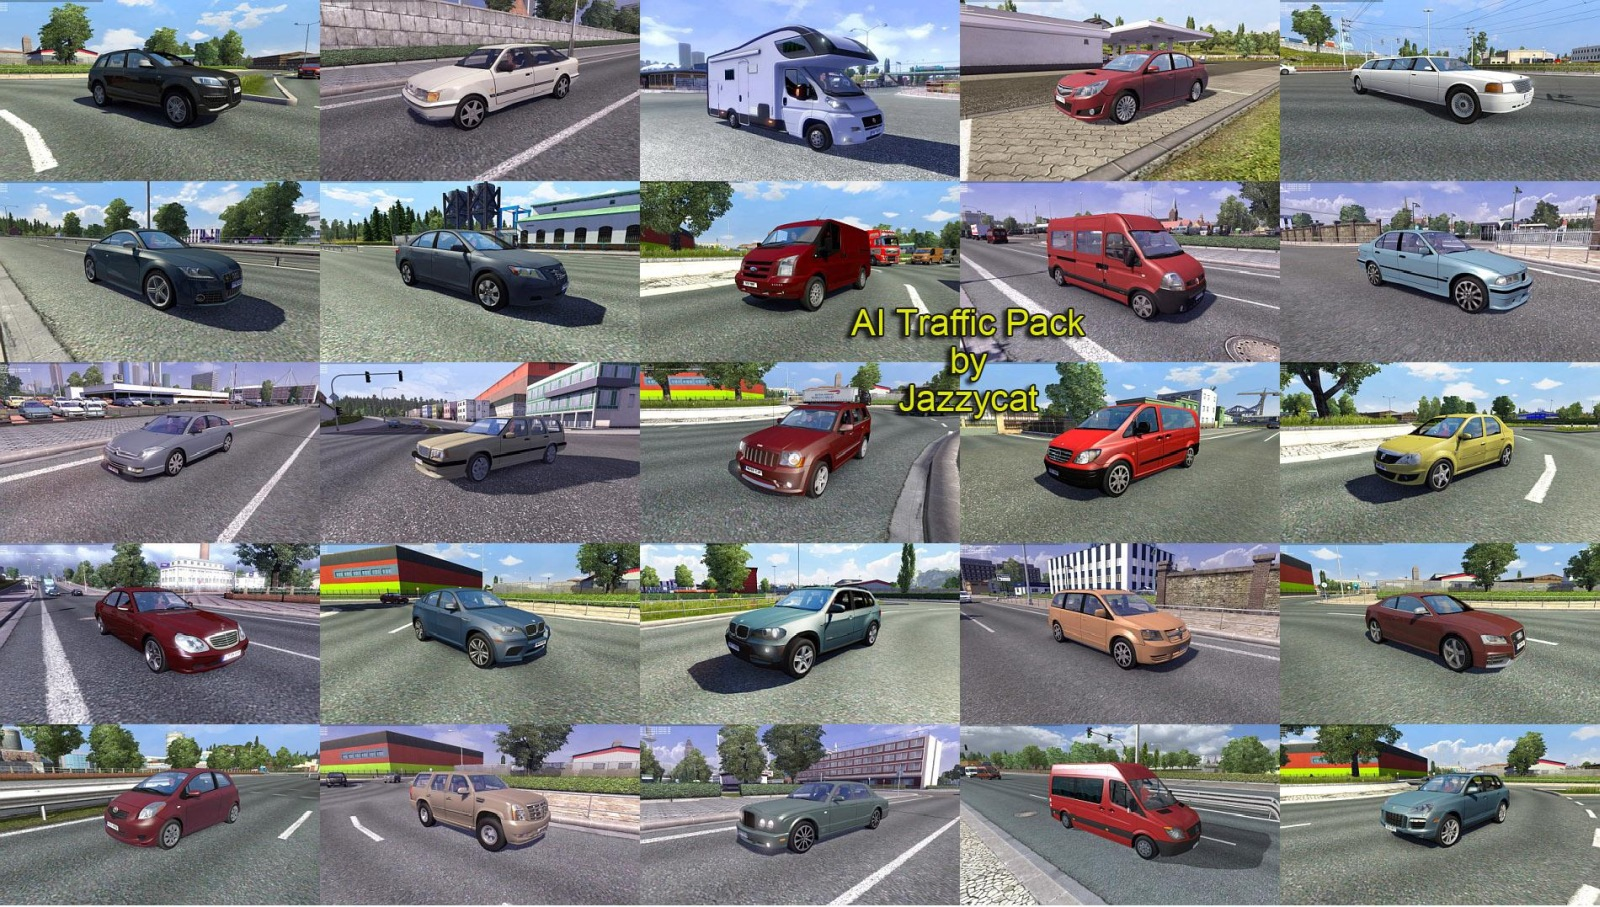 Volvo T5 Howling Engine Plain Brown Wrapper in addition Some Pics Of My Swedish Volvos 740 850 940 T478775 additionally 4278 Big Red Fun Bus likewise Volvo T5 Howling Engine Plain Brown Wrapper in addition Cool Wheels That Work On Everything V 2 2 Bbs Lm. on volvo 850 t 5 tuning